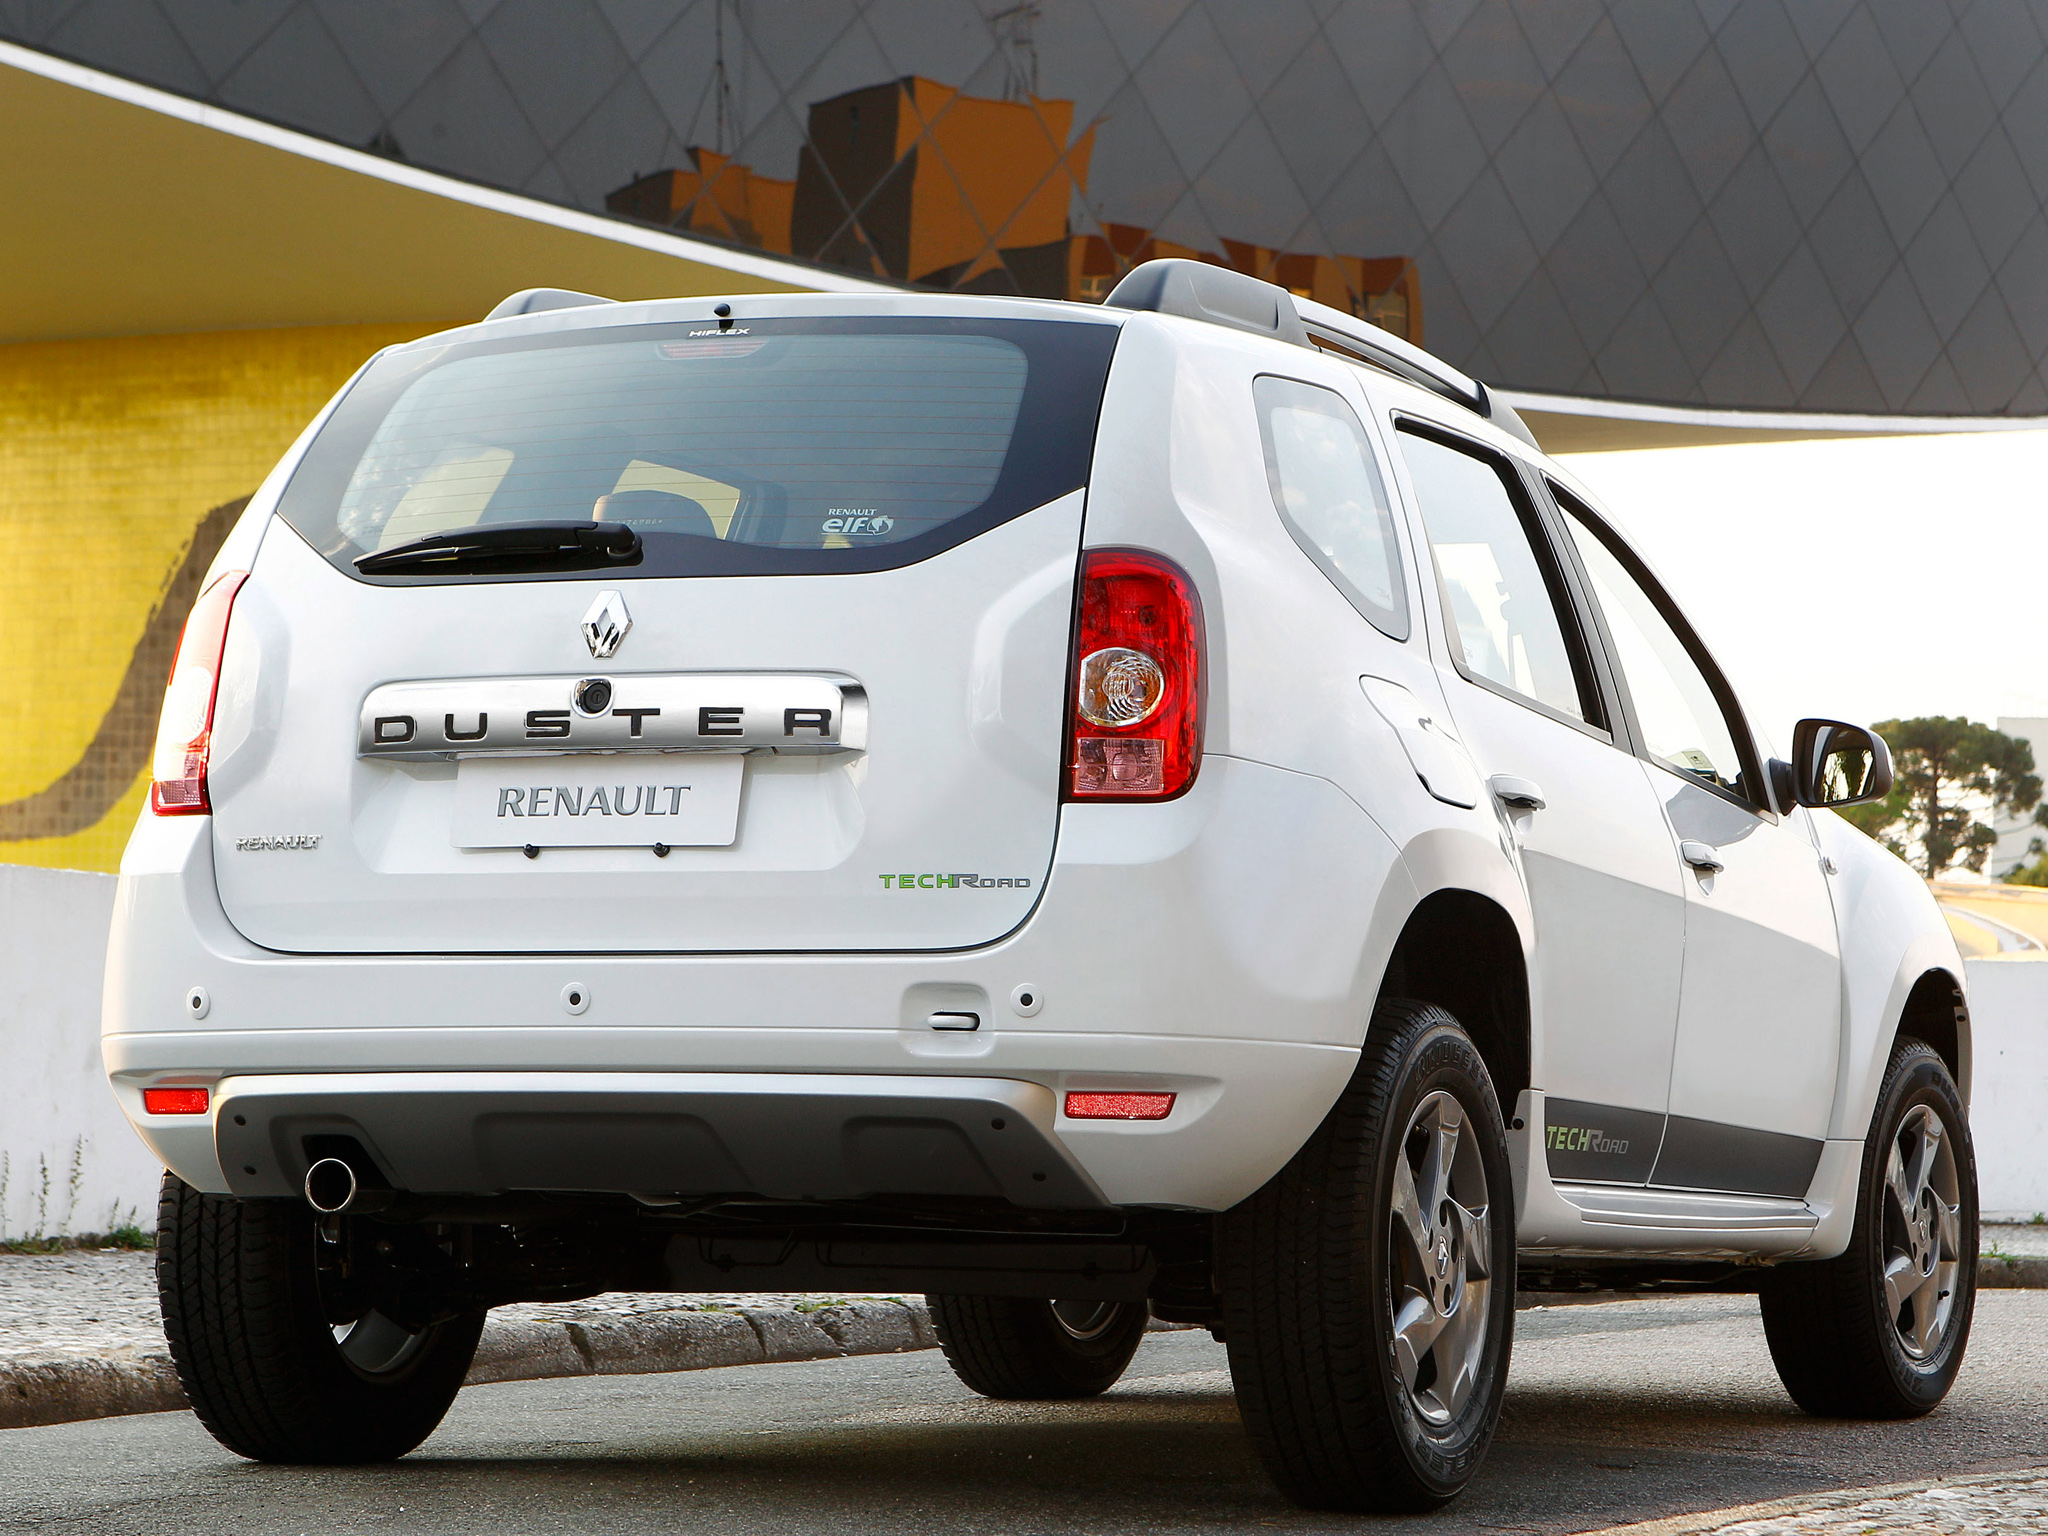 renolt duster Renault new duster price (gst rates) in india starts at ₹ 86 lakhs check out renault new duster colours, review, images and new duster variants on road price at carwalecom.